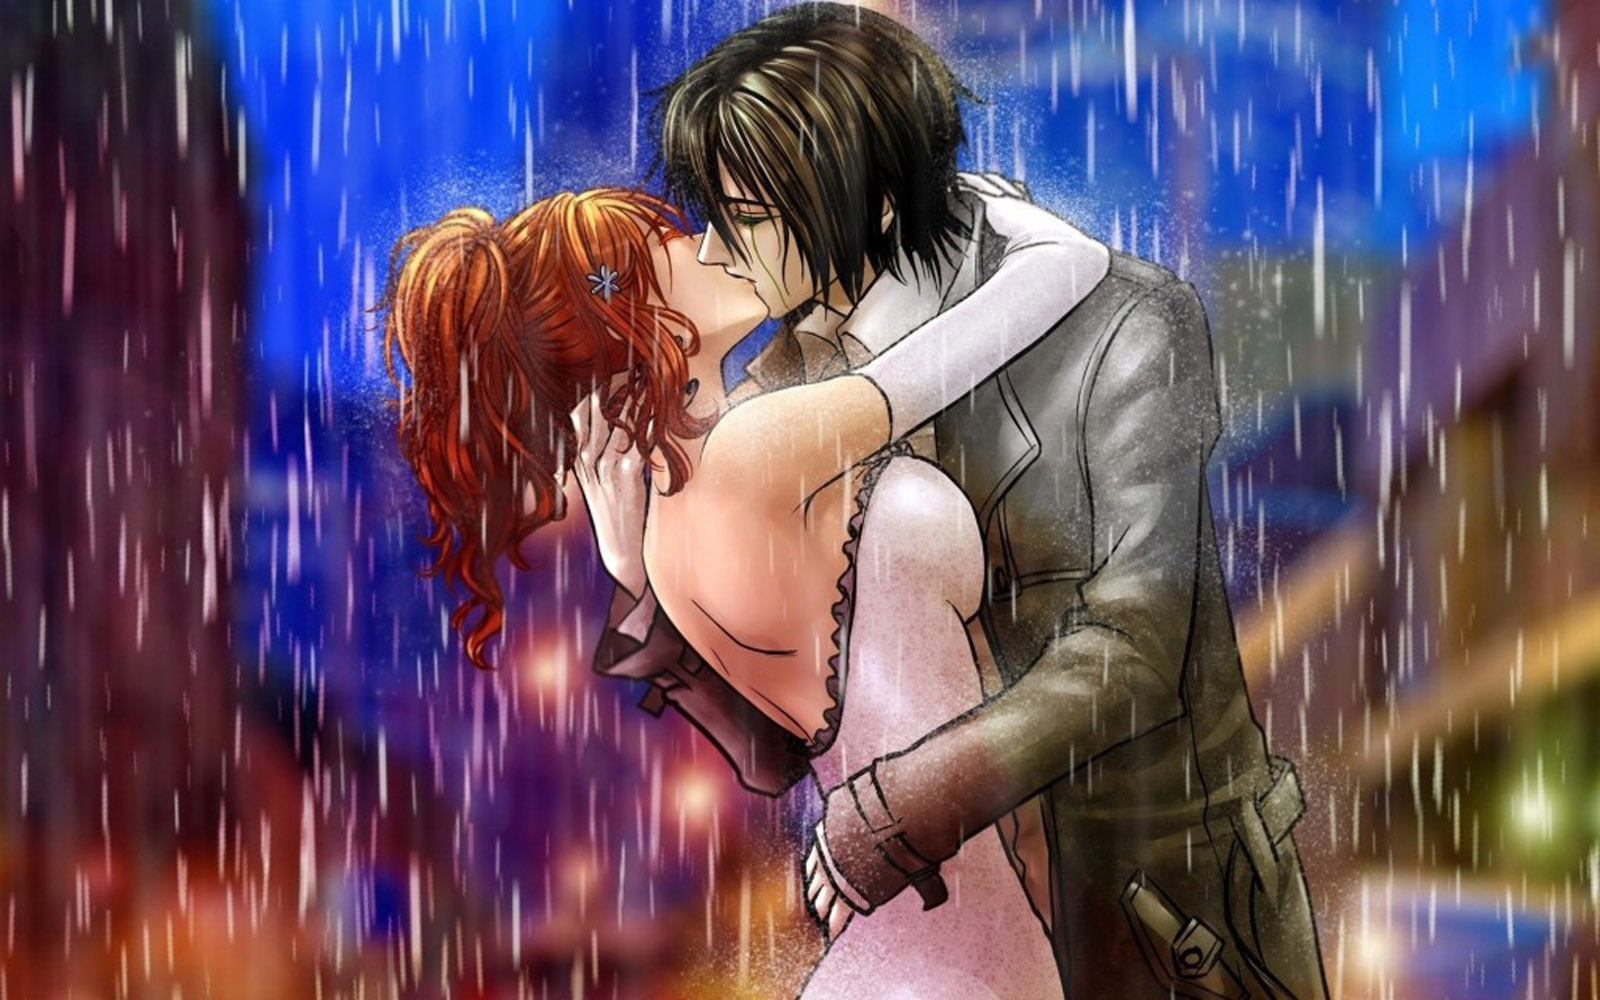 Wallpaper download couple love - Happy Kiss Day Love Couple Hd Wallpapers Download Free